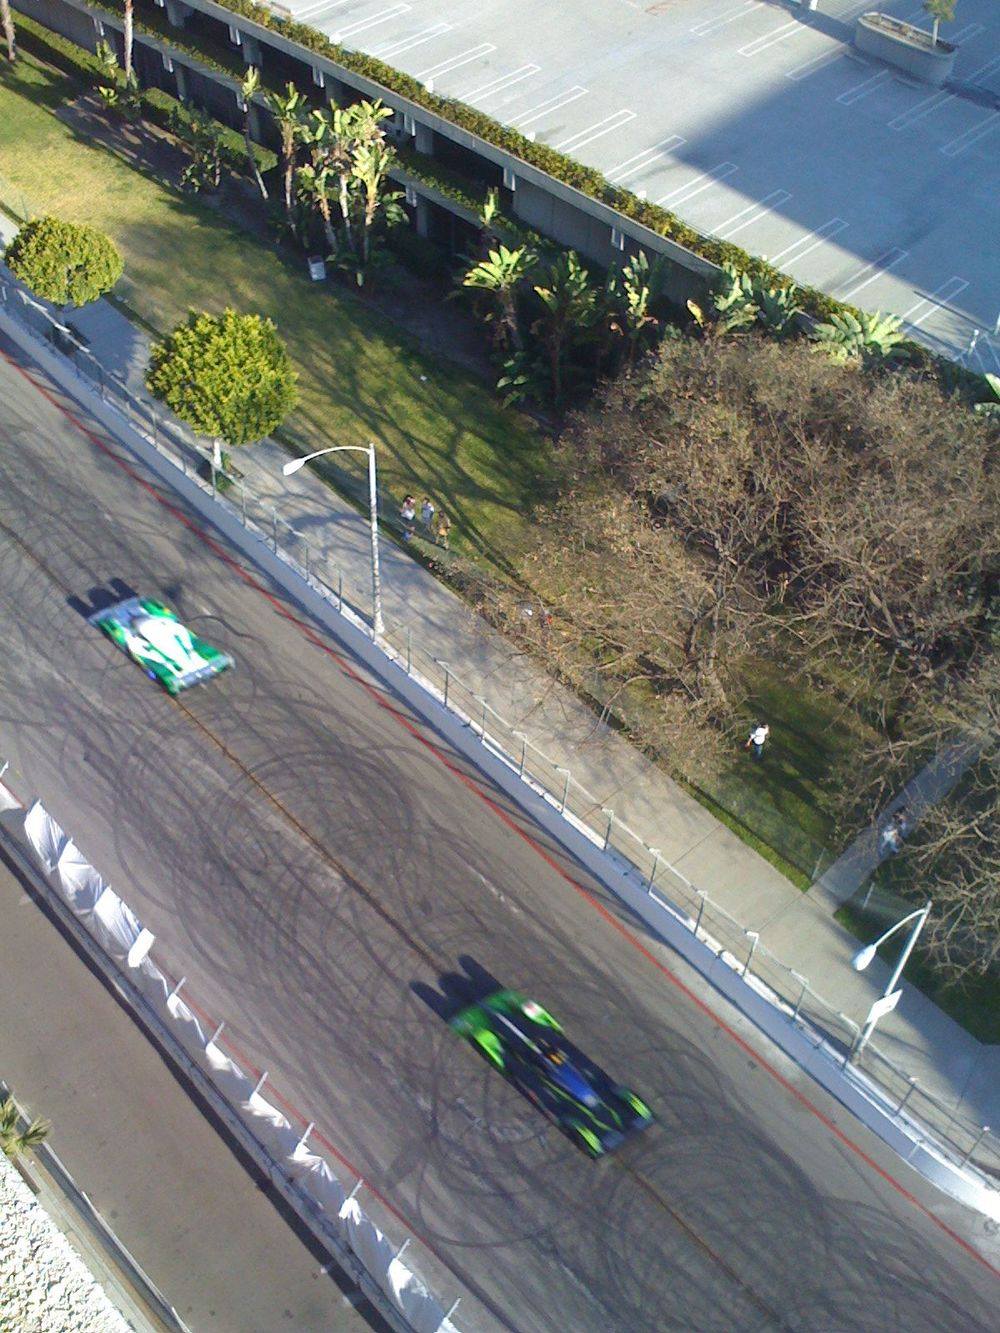 The Long Beach Grand Prix view from @gstiehl 's mom's balcony